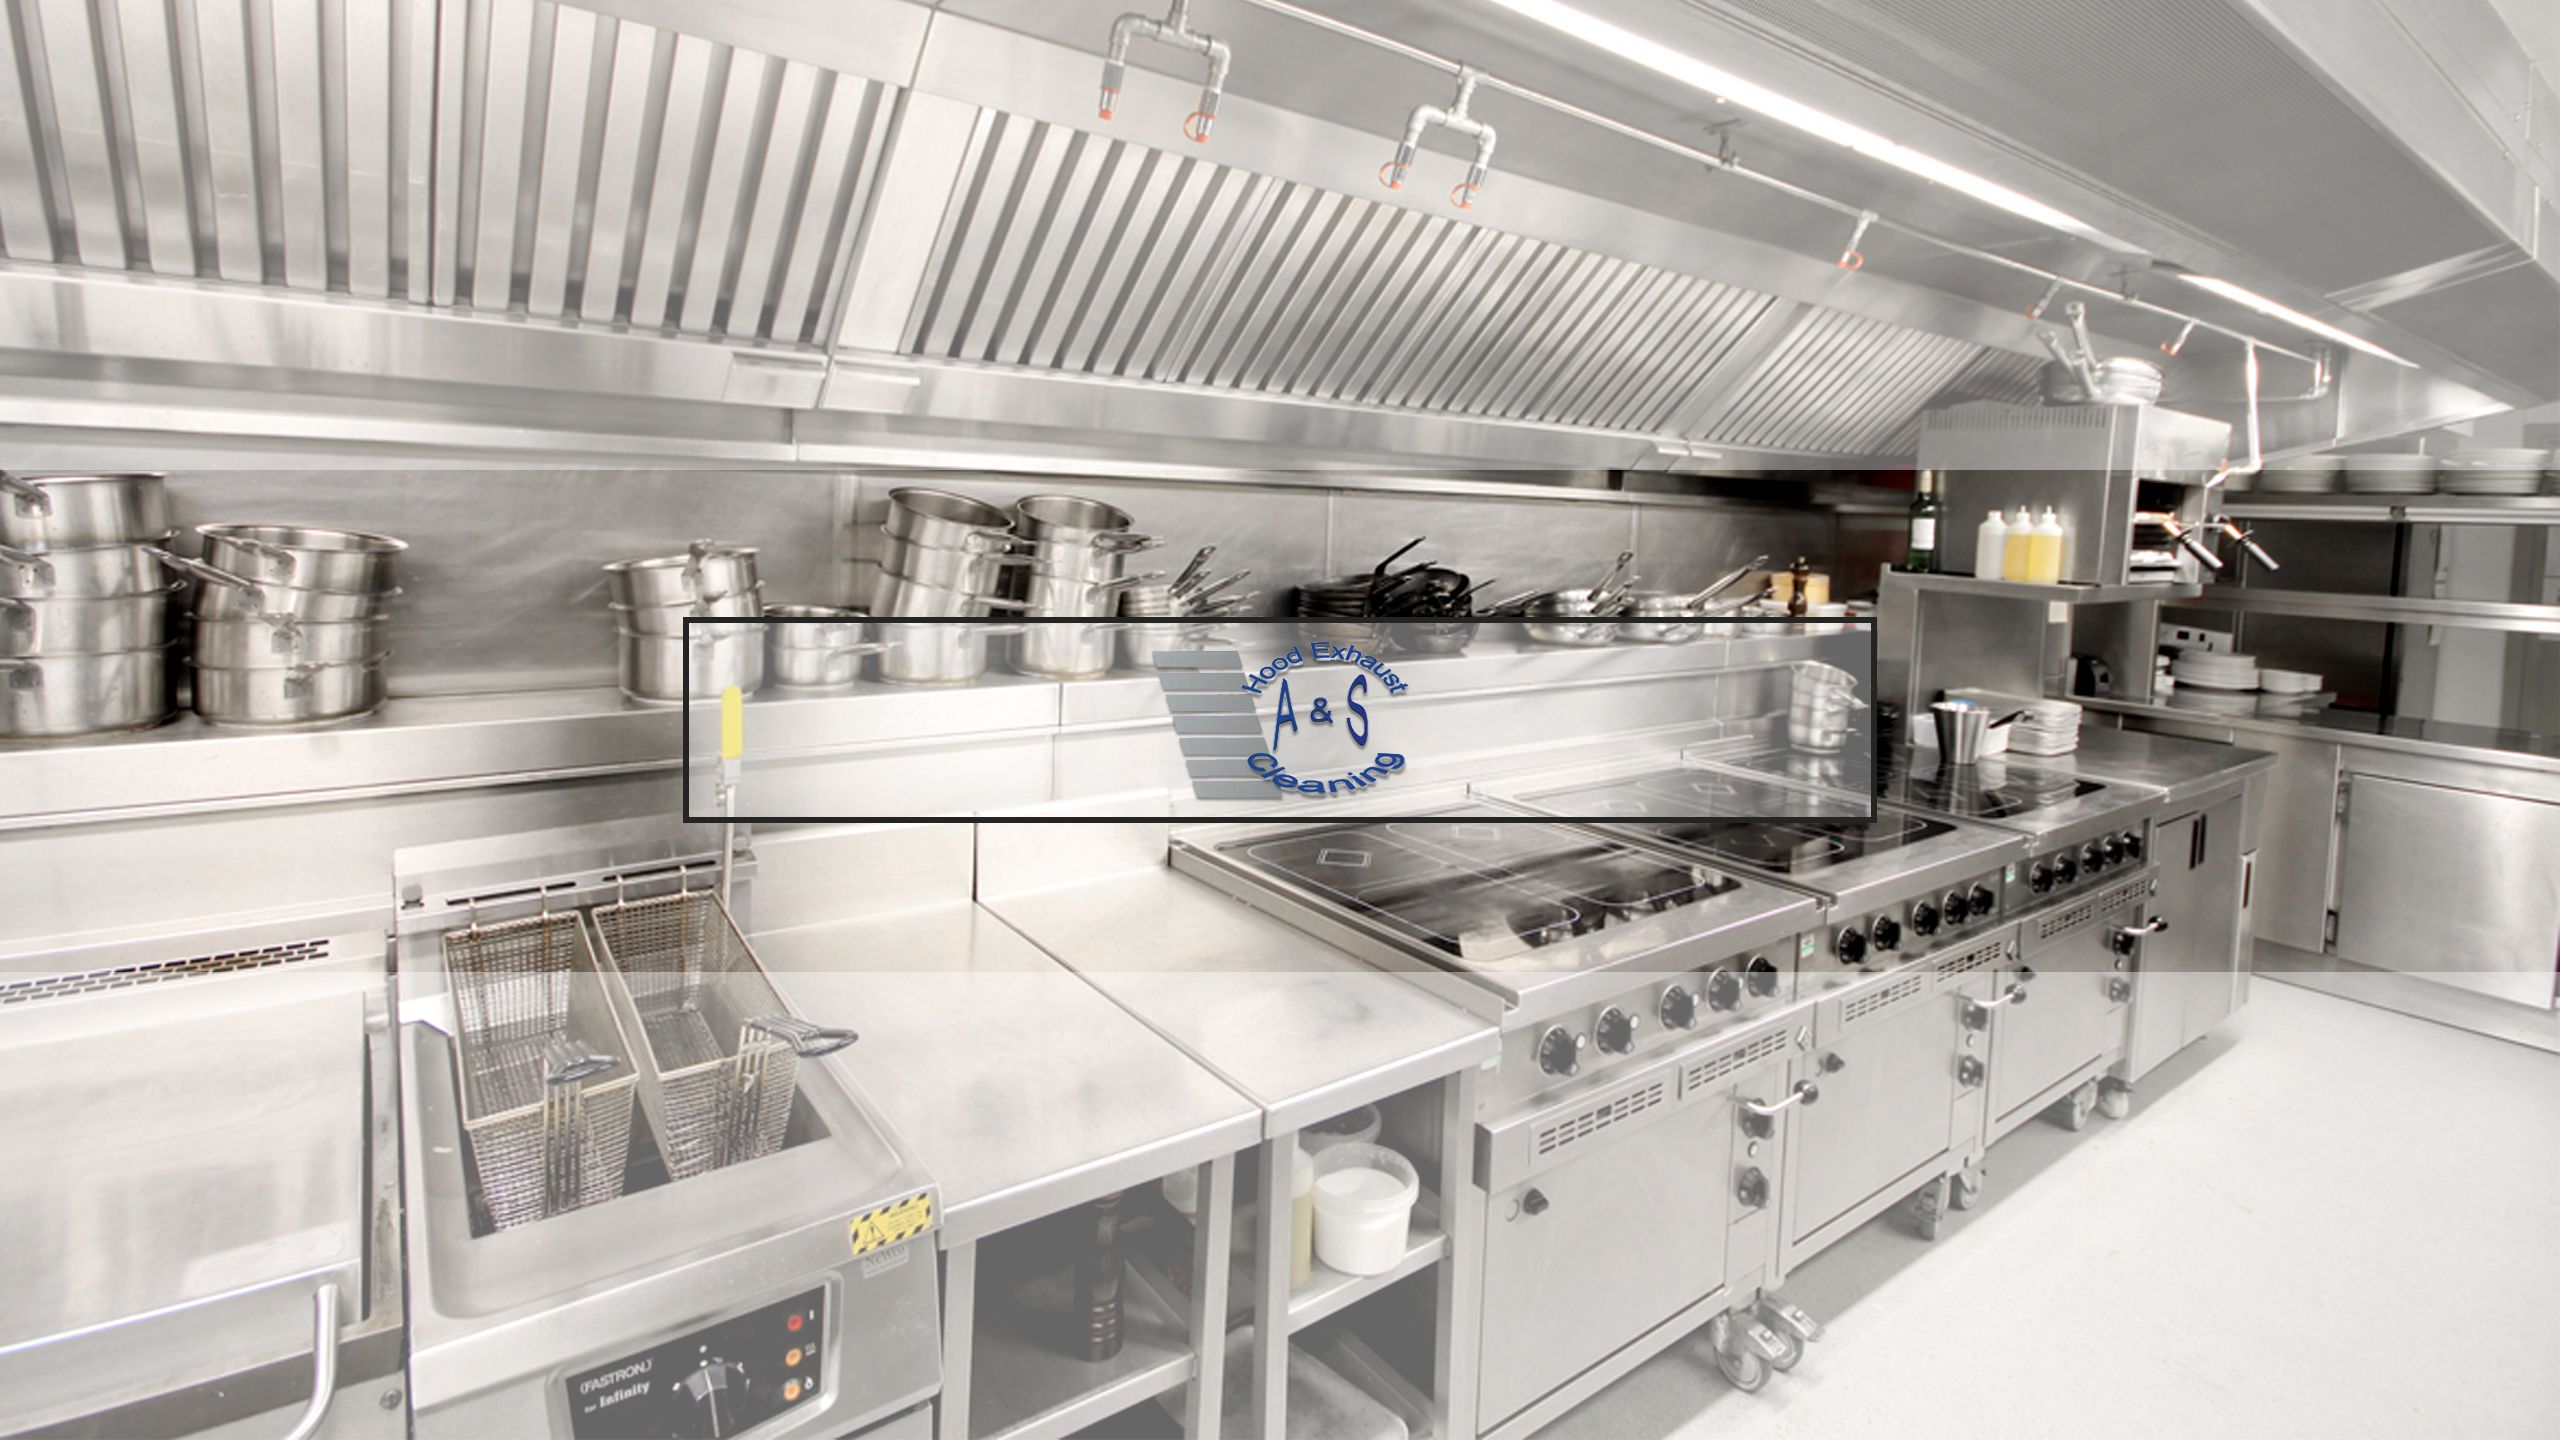 A S Hood Exhaust Cleaning Is A Kitchen Exhaust Cleaning Company In Phoenix Az We Offer Pres Restaurant Kitchen Design Commercial Kitchen Design Hotel Kitchen